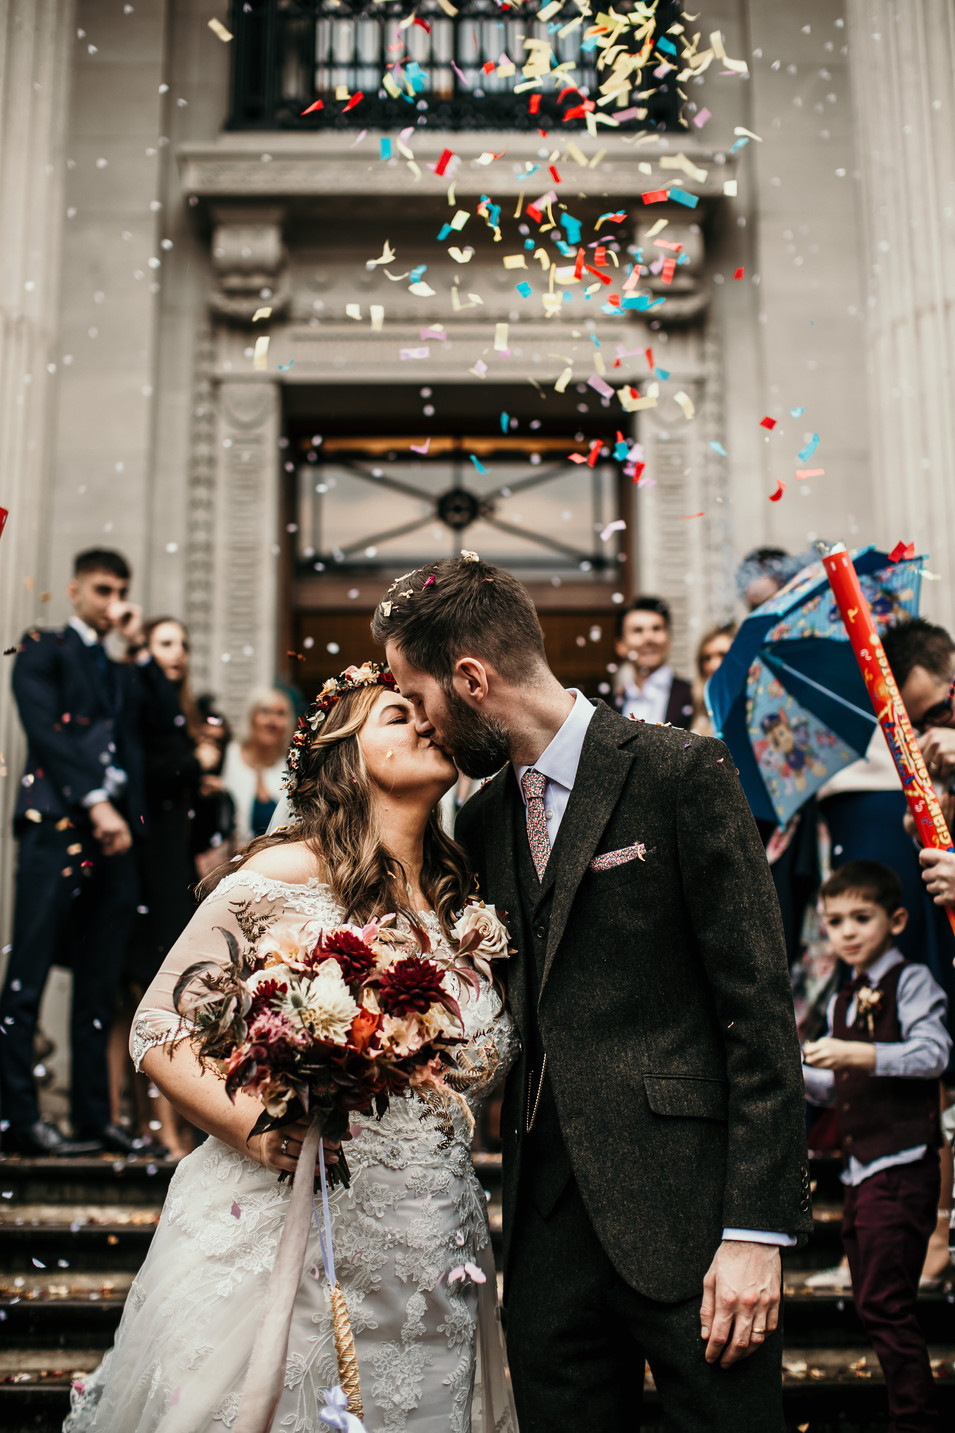 Colourful confetti shot london wedding